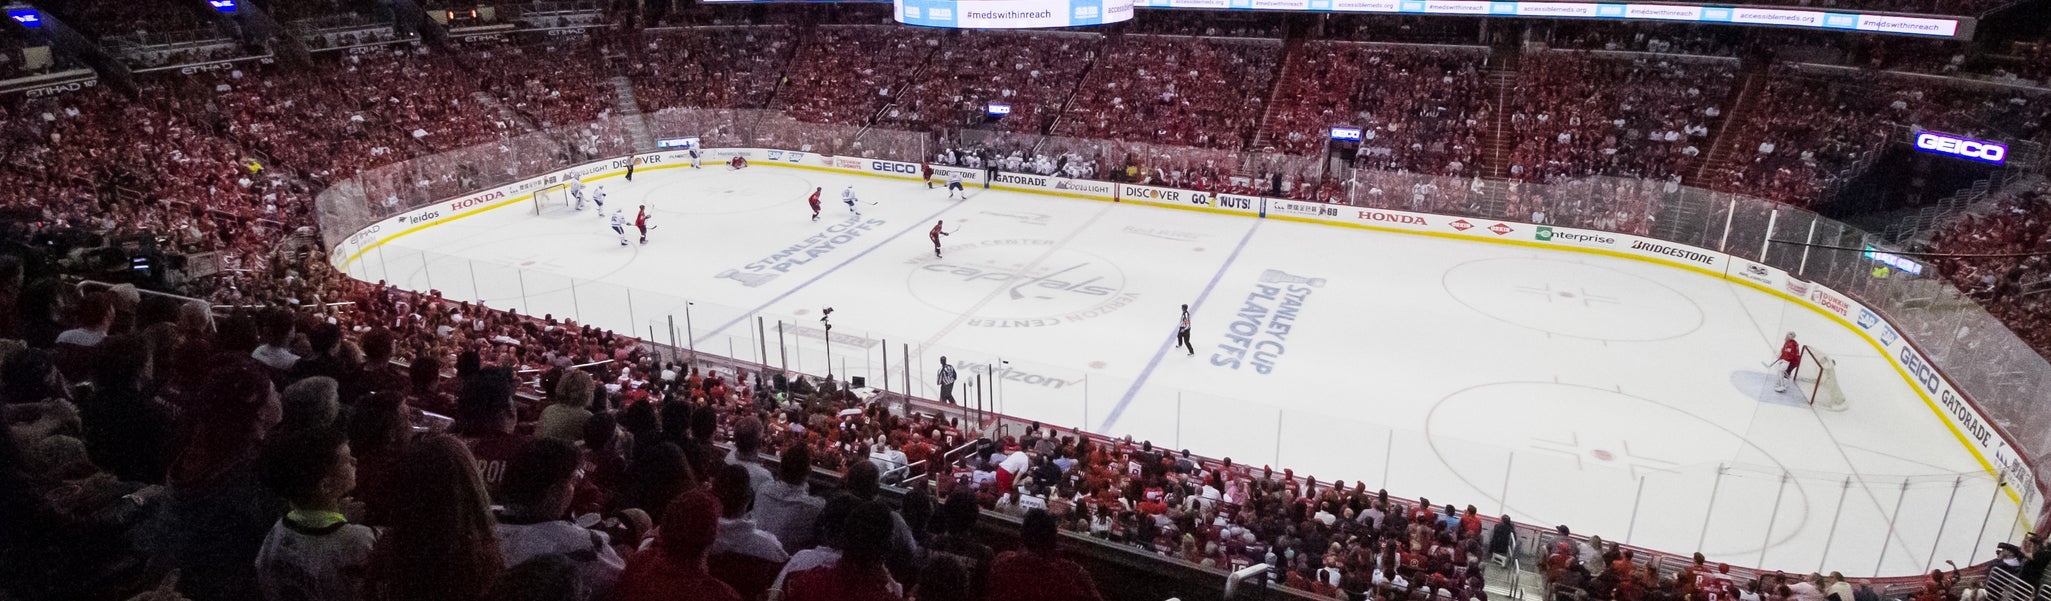 Seat view from Acela Level Corner 217 at Capital One Arena